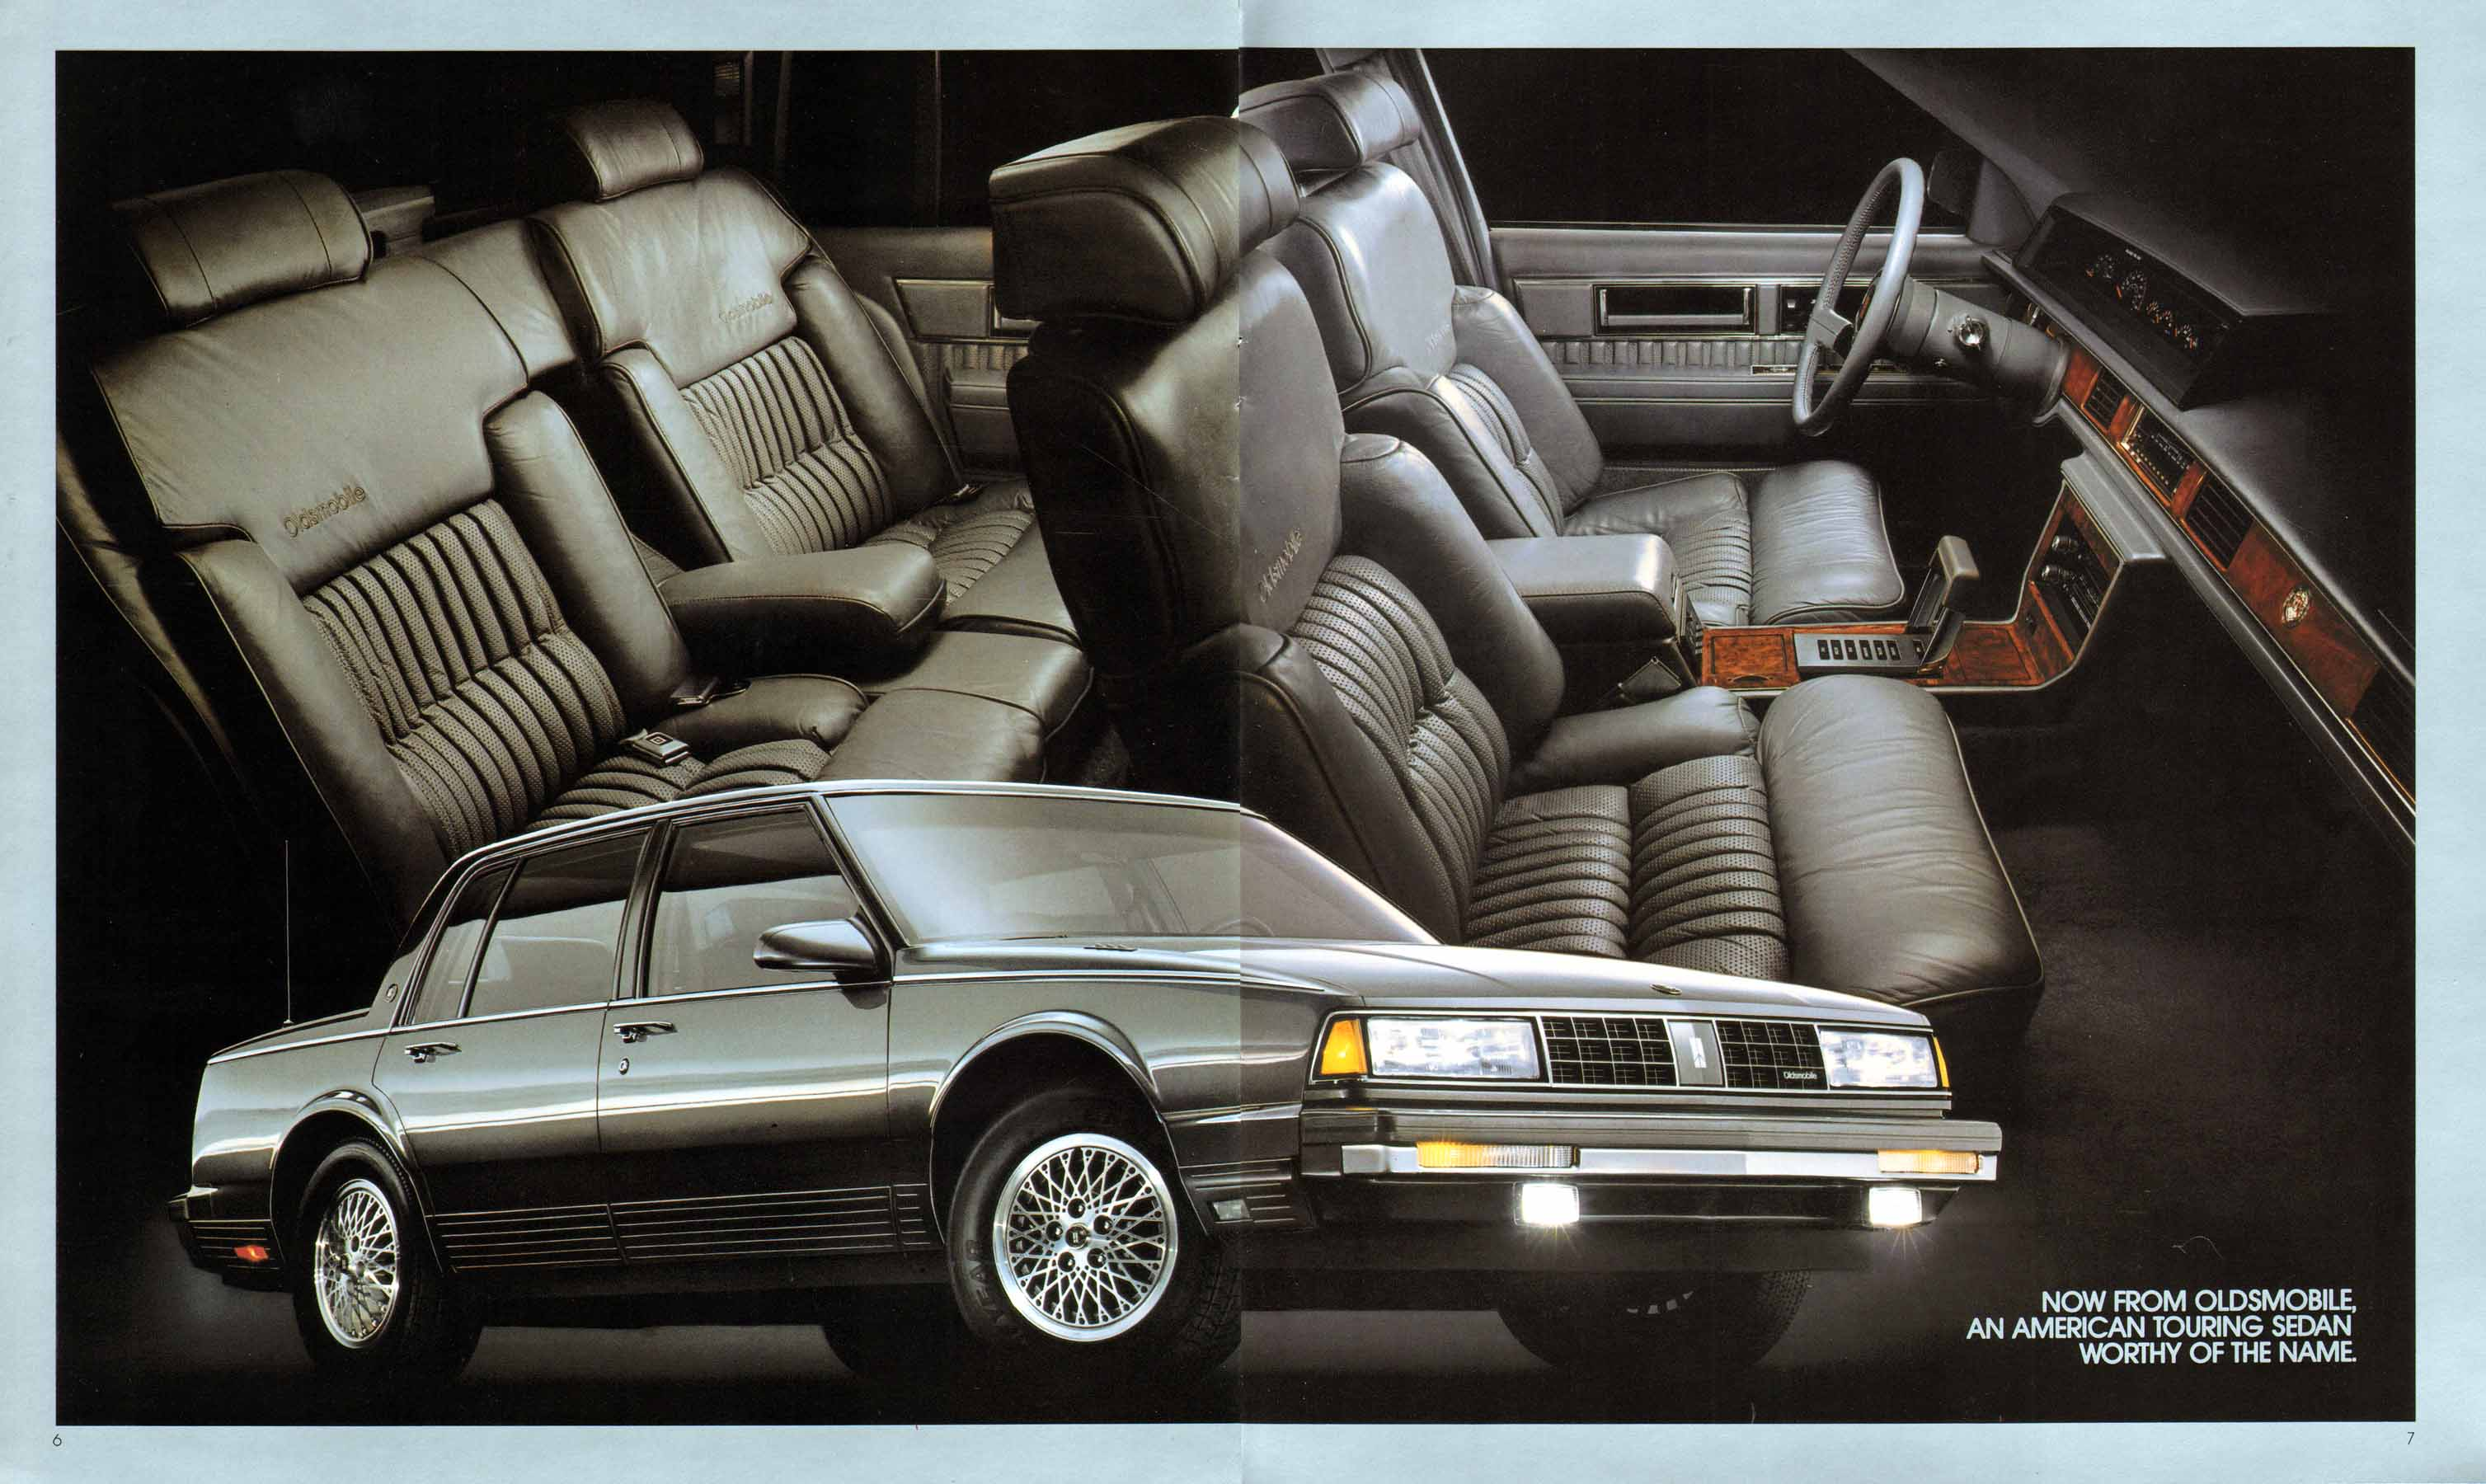 Curbside Classic: 1992 Oldsmobile - 302.4KB